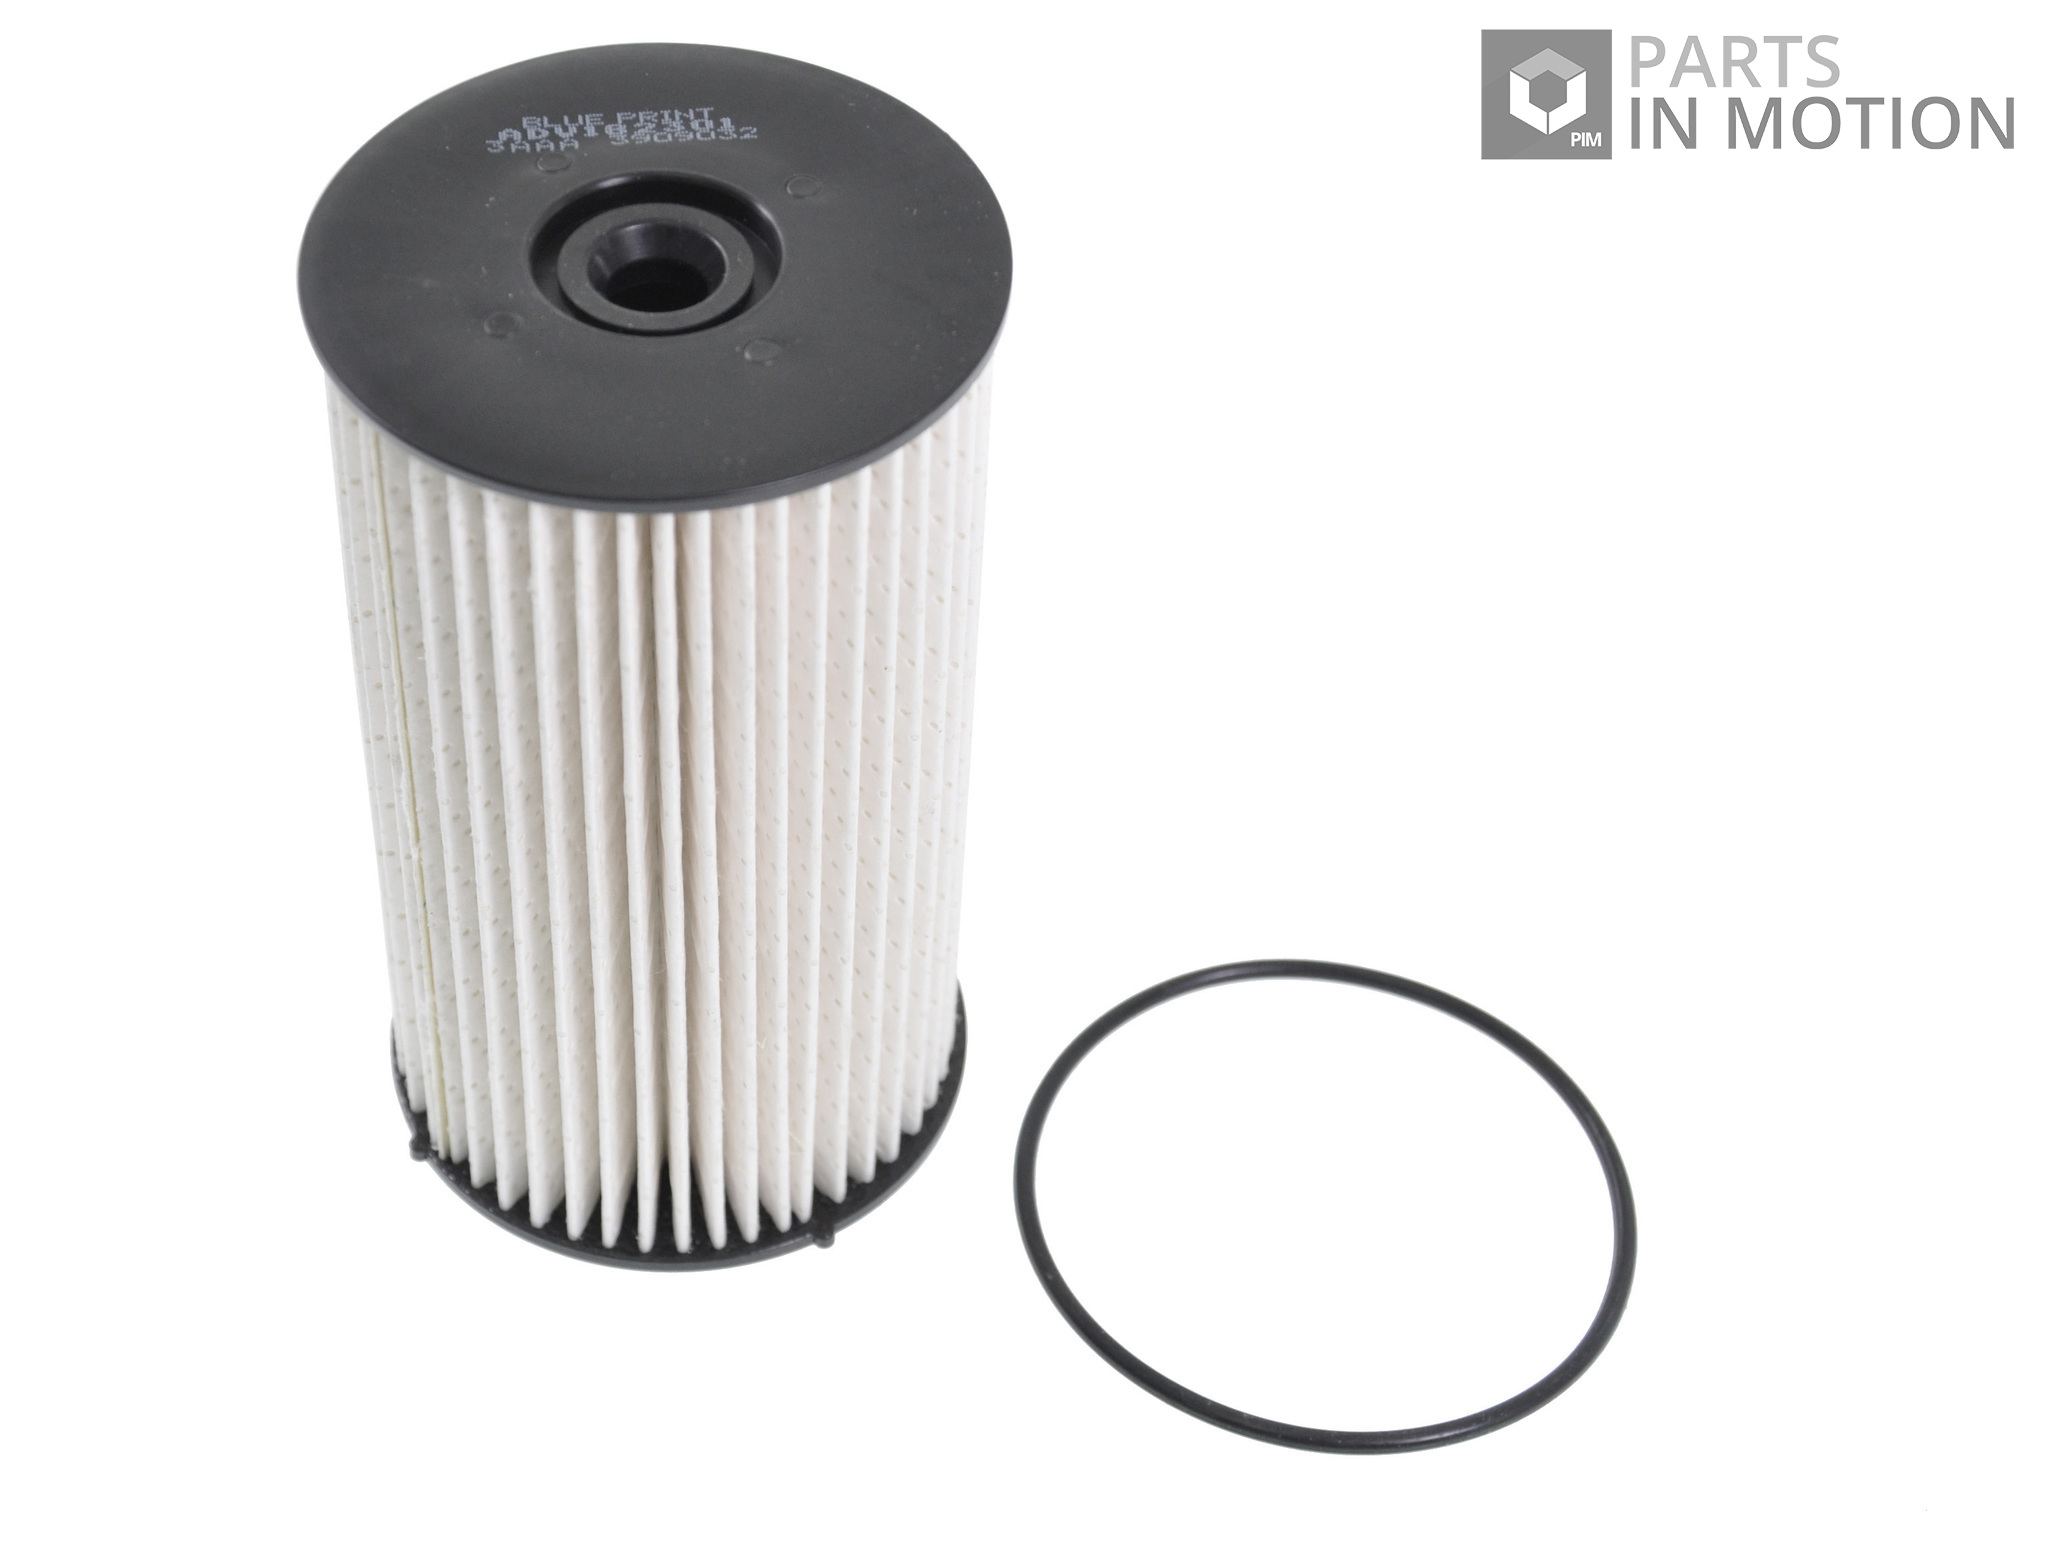 AUDI A3 8P 2 0D Fuel Filter 03 to 13 ADL 3C Genuine Quality